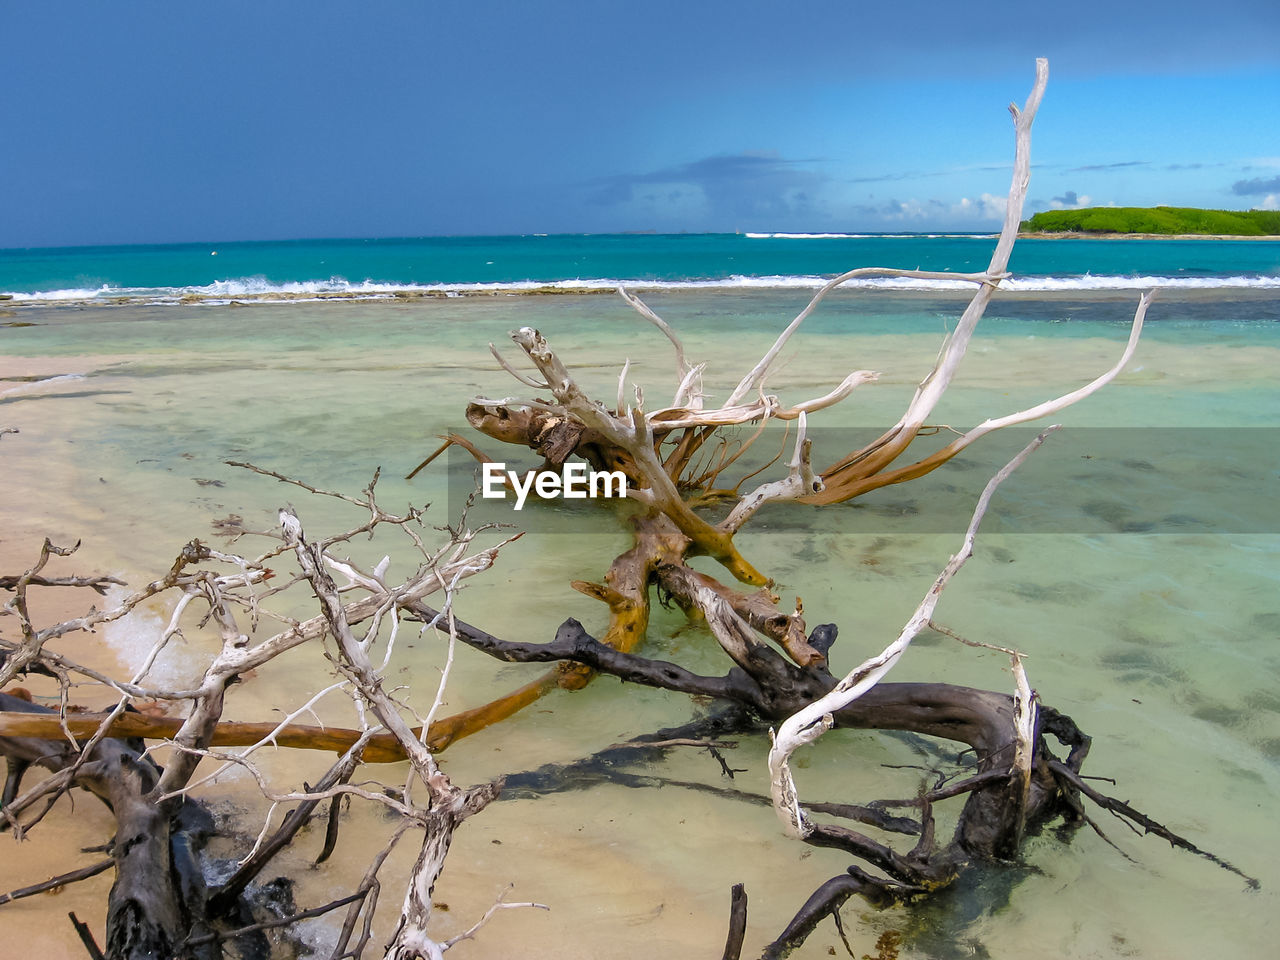 water, sea, land, beach, beauty in nature, horizon over water, horizon, sky, nature, tranquility, scenics - nature, plant, day, tranquil scene, no people, non-urban scene, dead plant, tree, remote, outdoors, driftwood